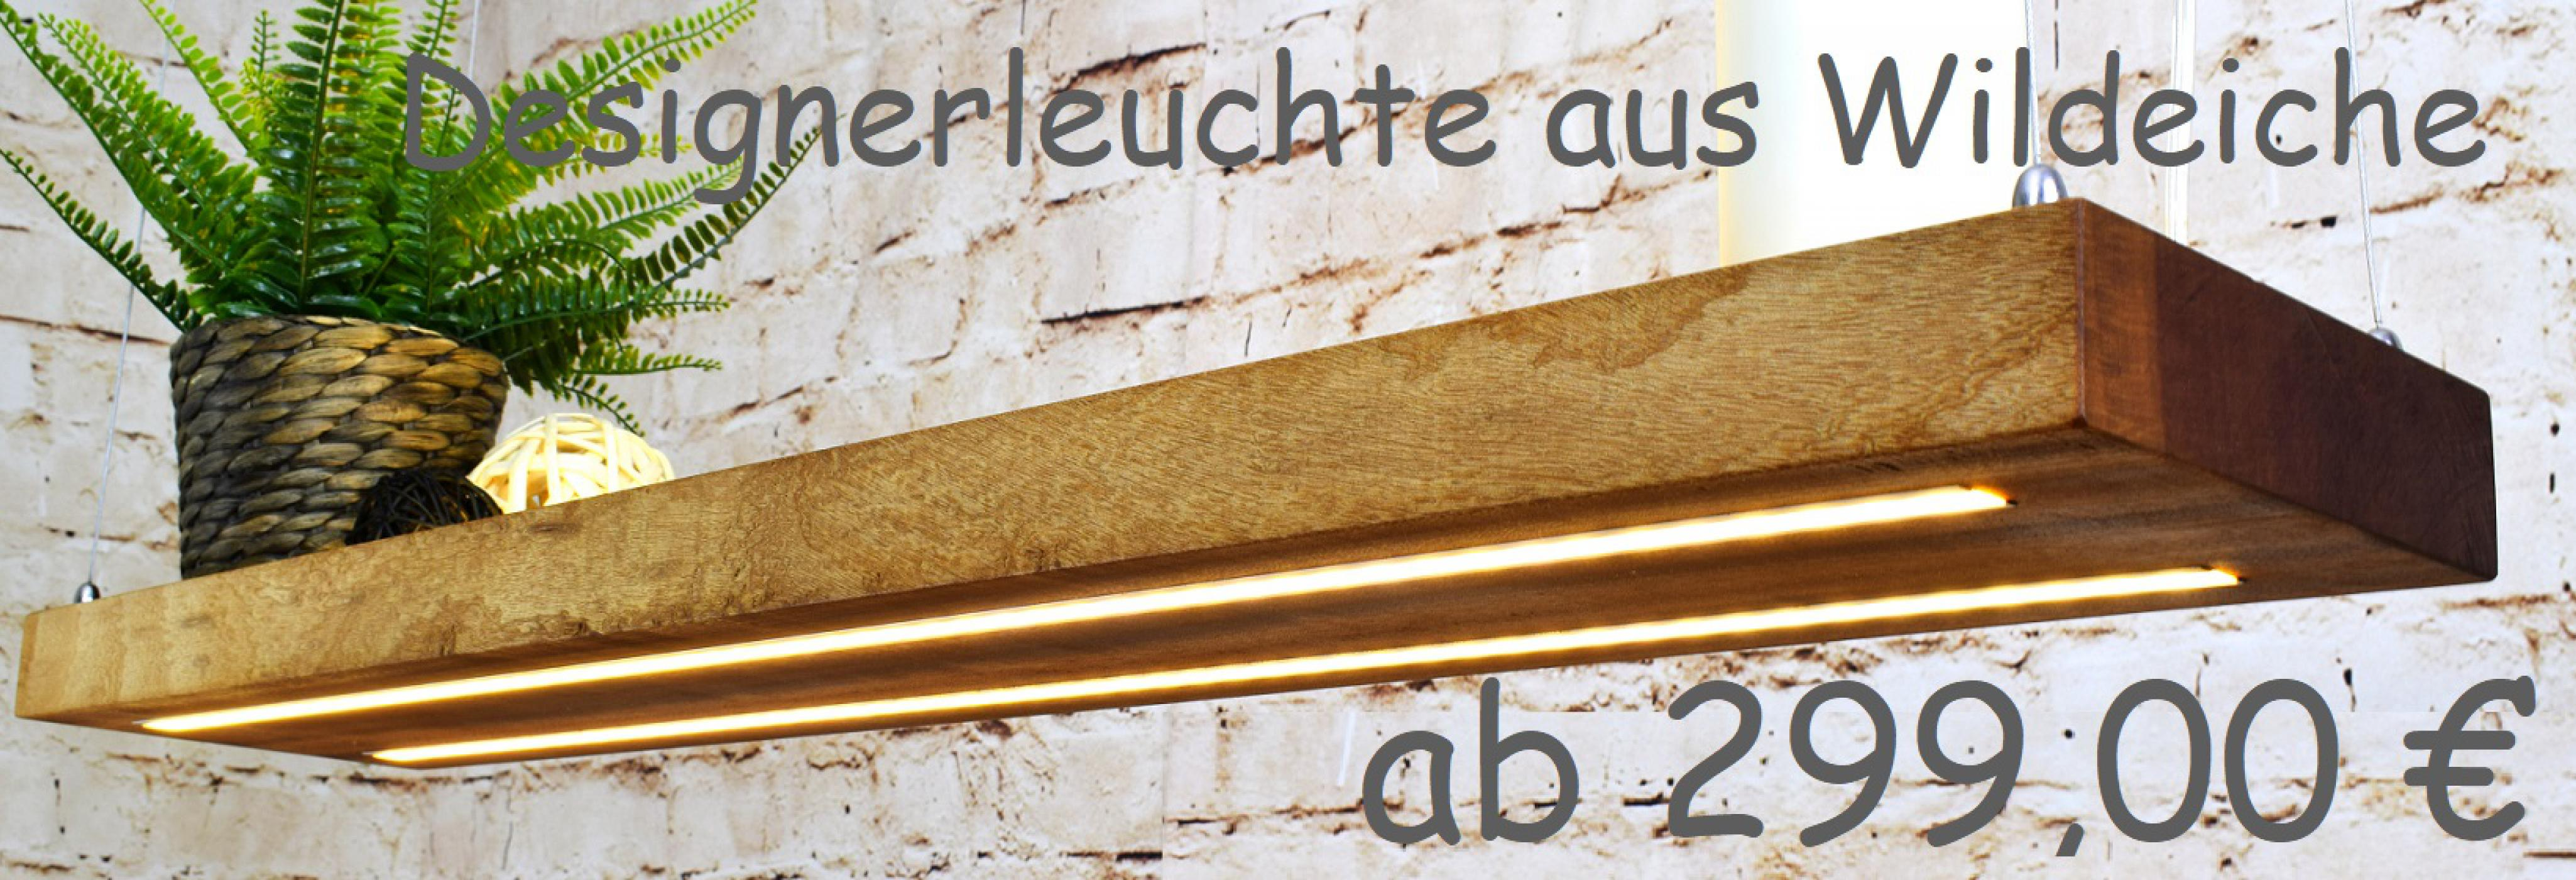 Design, Leuchte, Lampe, Regal, Holz, Wildeiche, Interieur